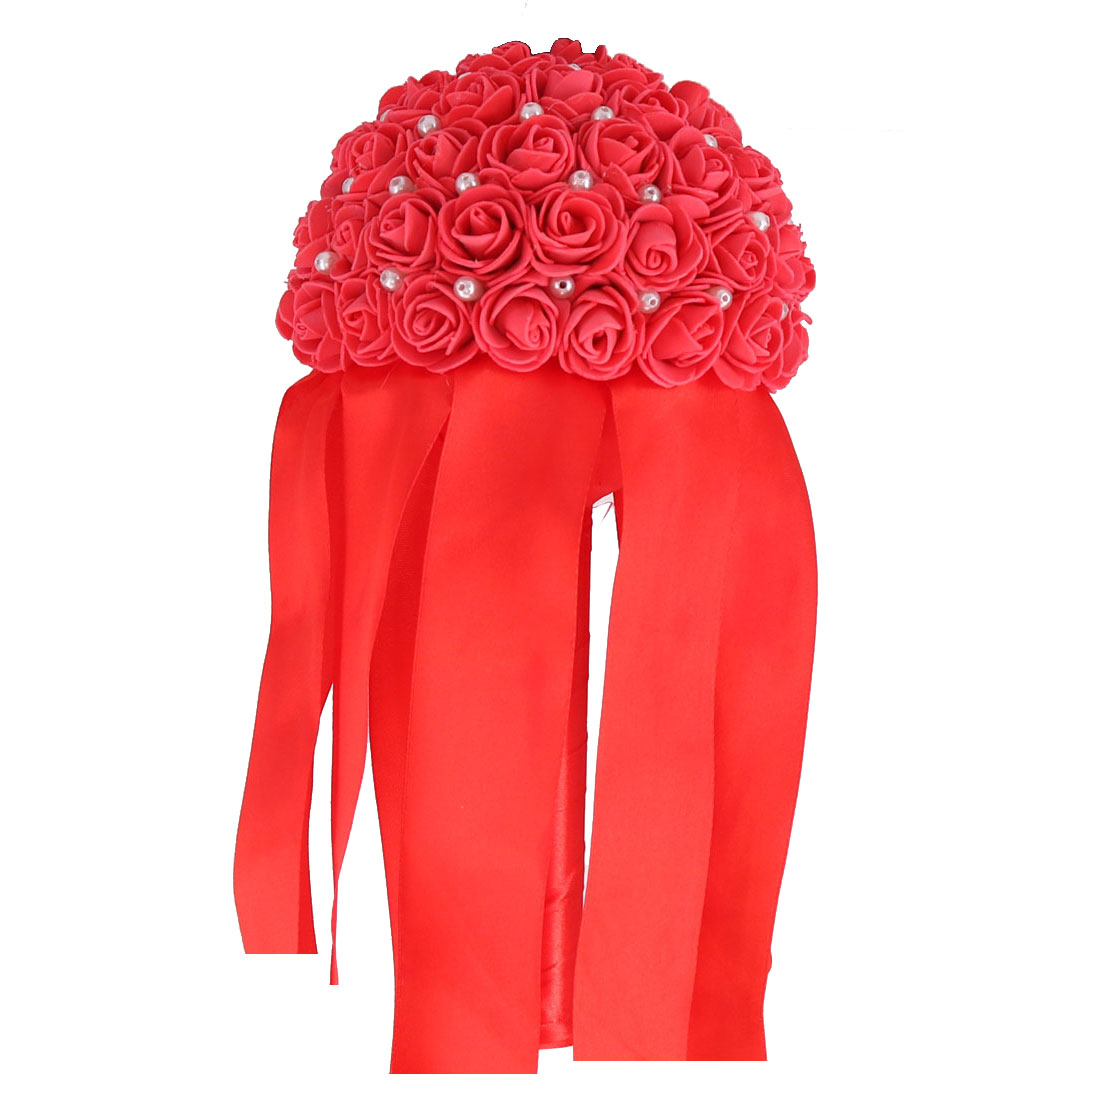 Bridal Wedding Foam Rose Flower Beads Decor Handhold Bouquet Watermelon Red